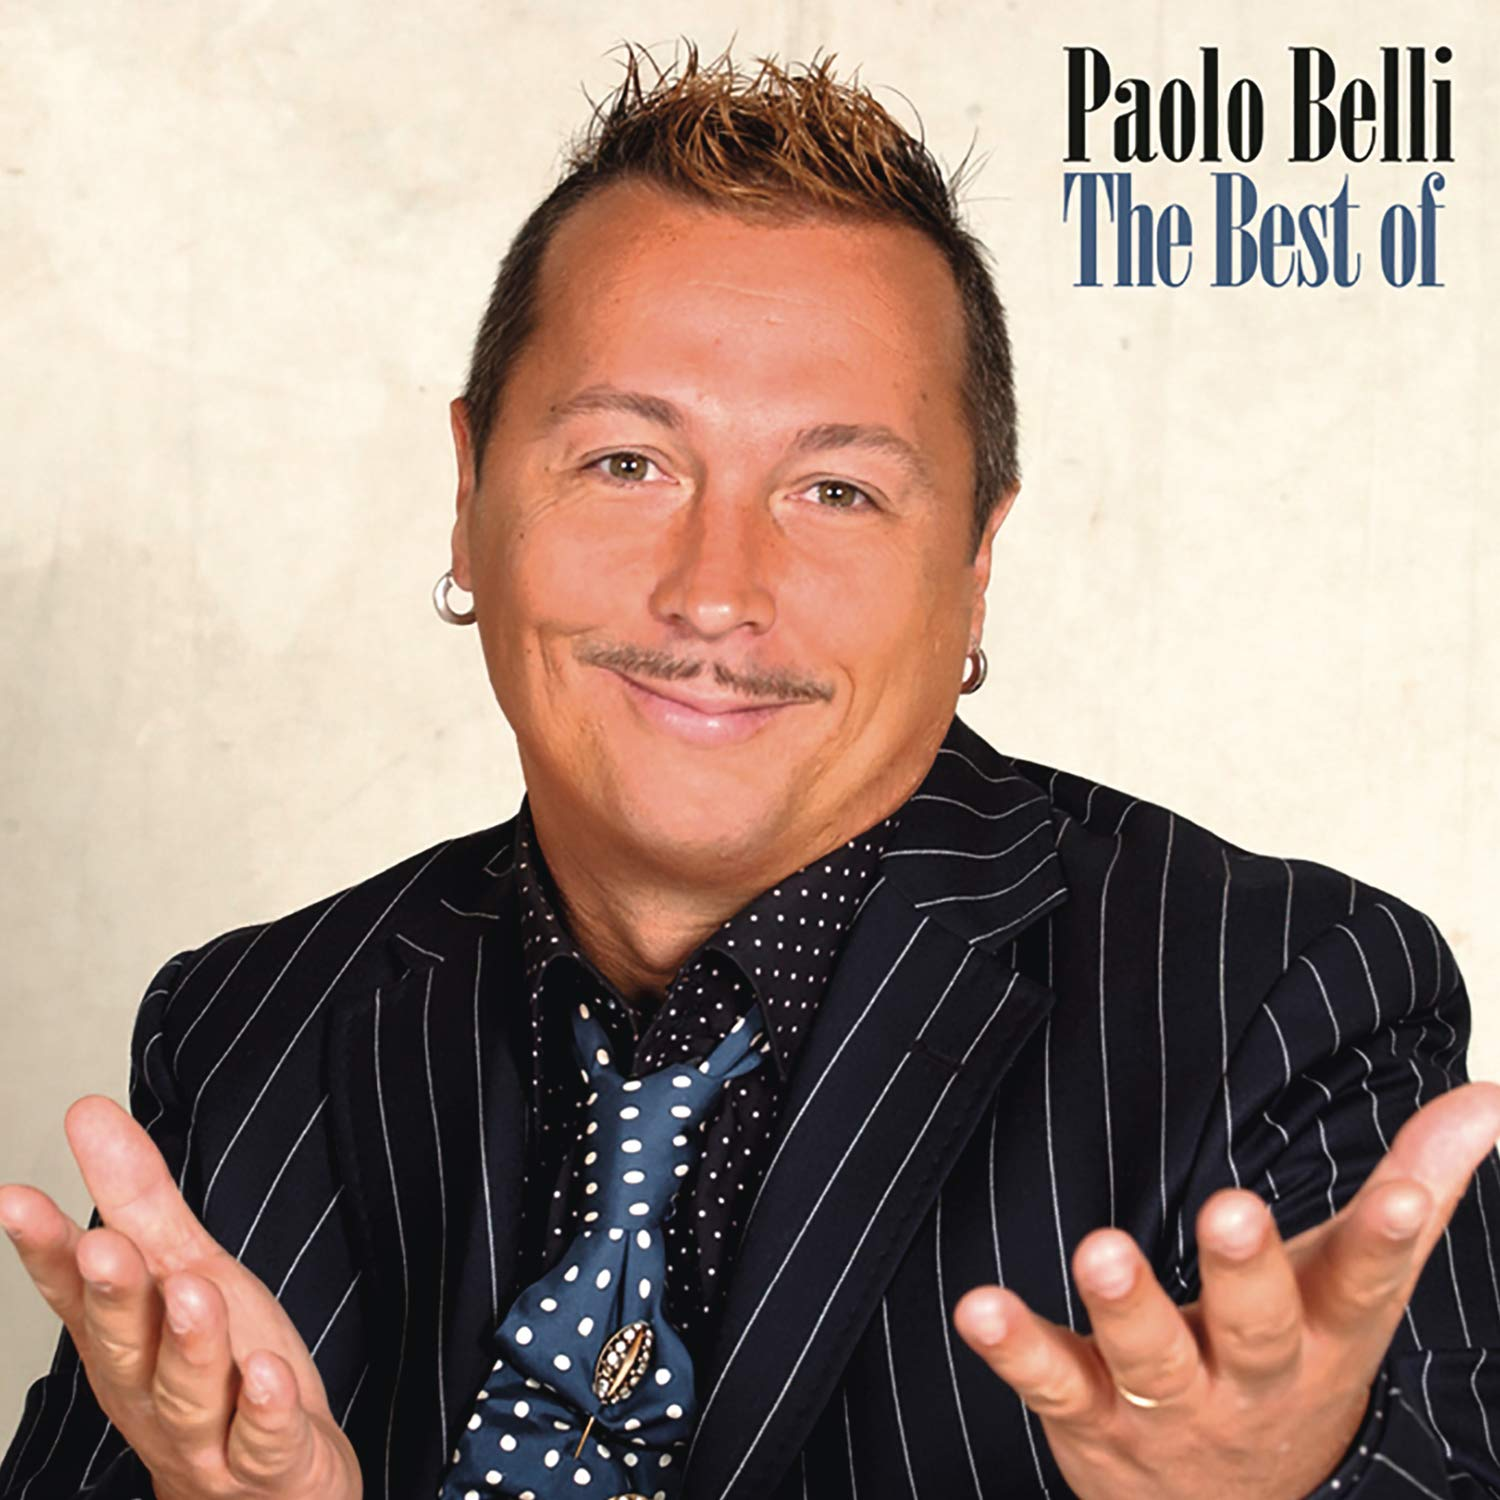 Paolo Belli - Best Of - Amazon.com Music